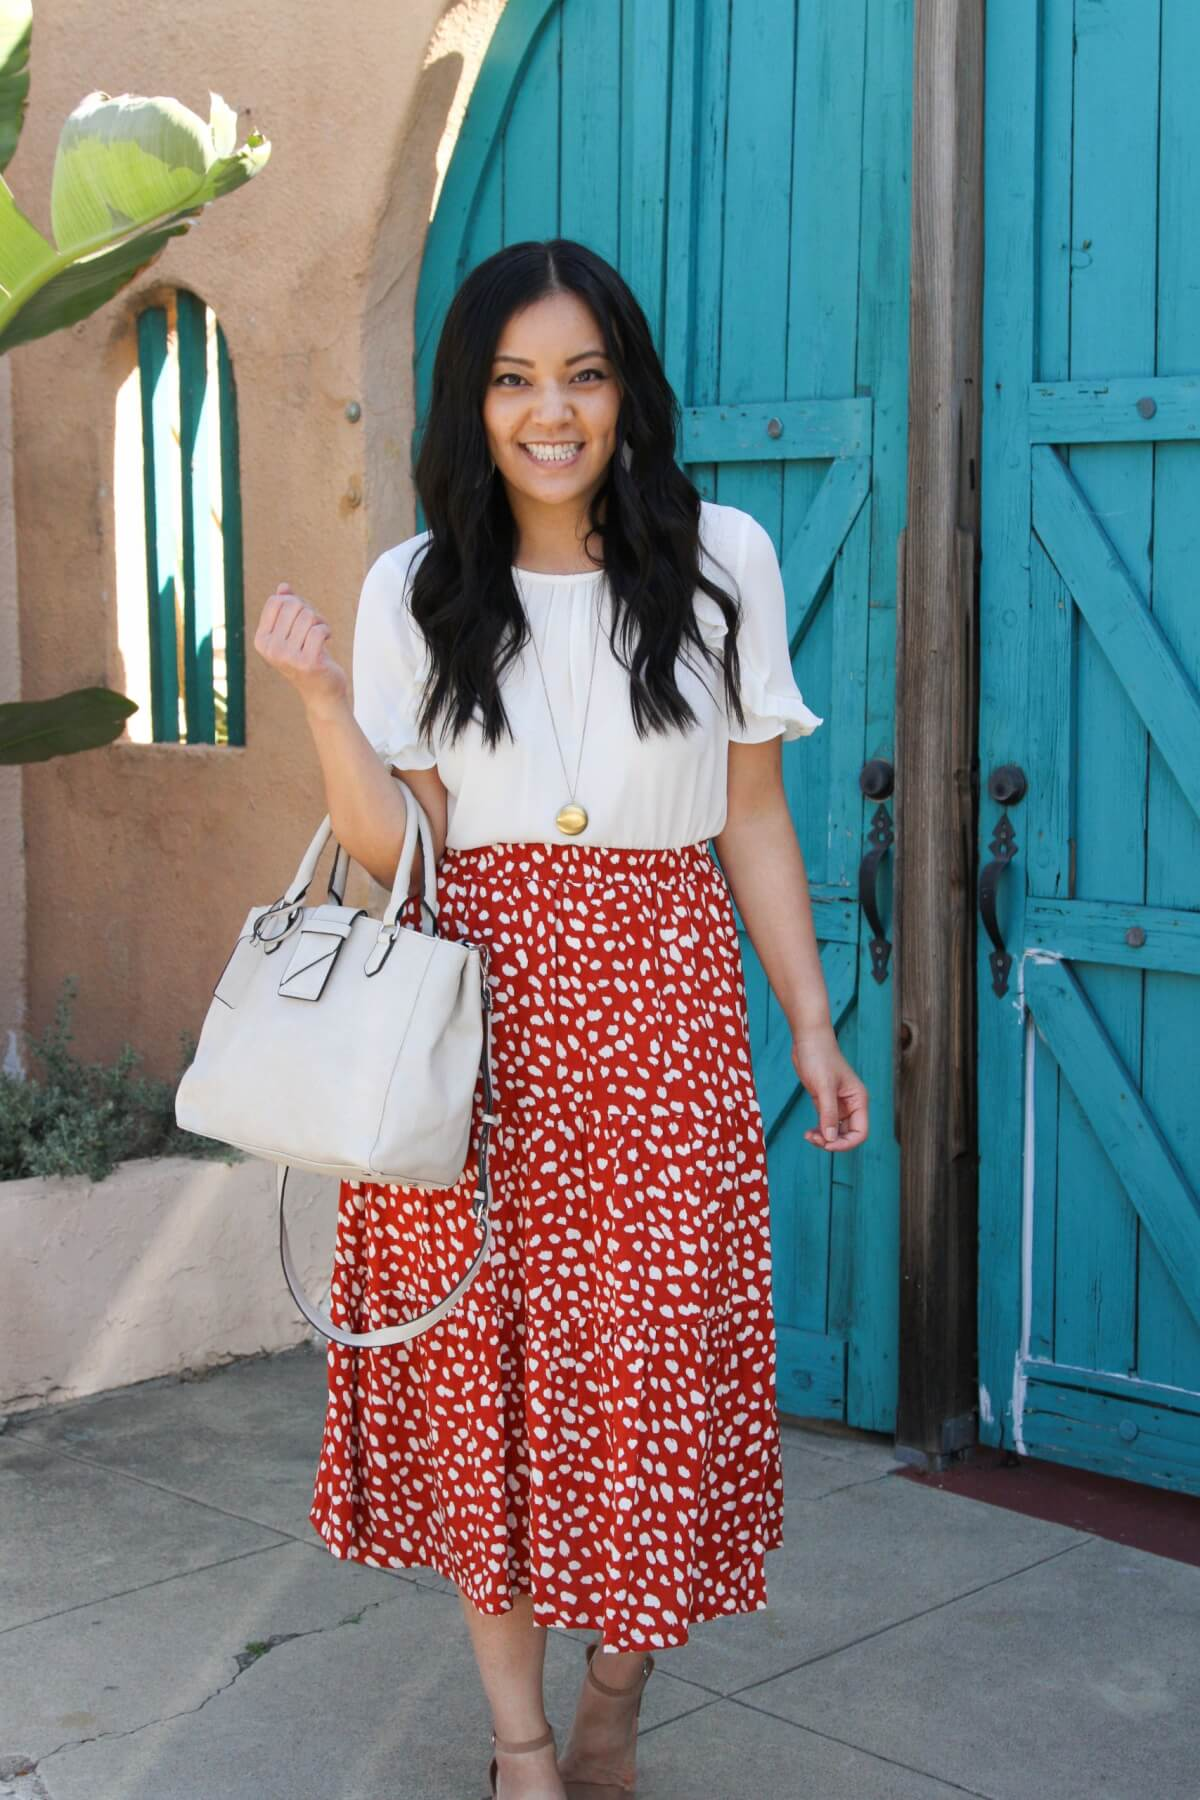 spring business casual outfit: white blouse + printed skirt + nude sandals + pendant necklace + white bag